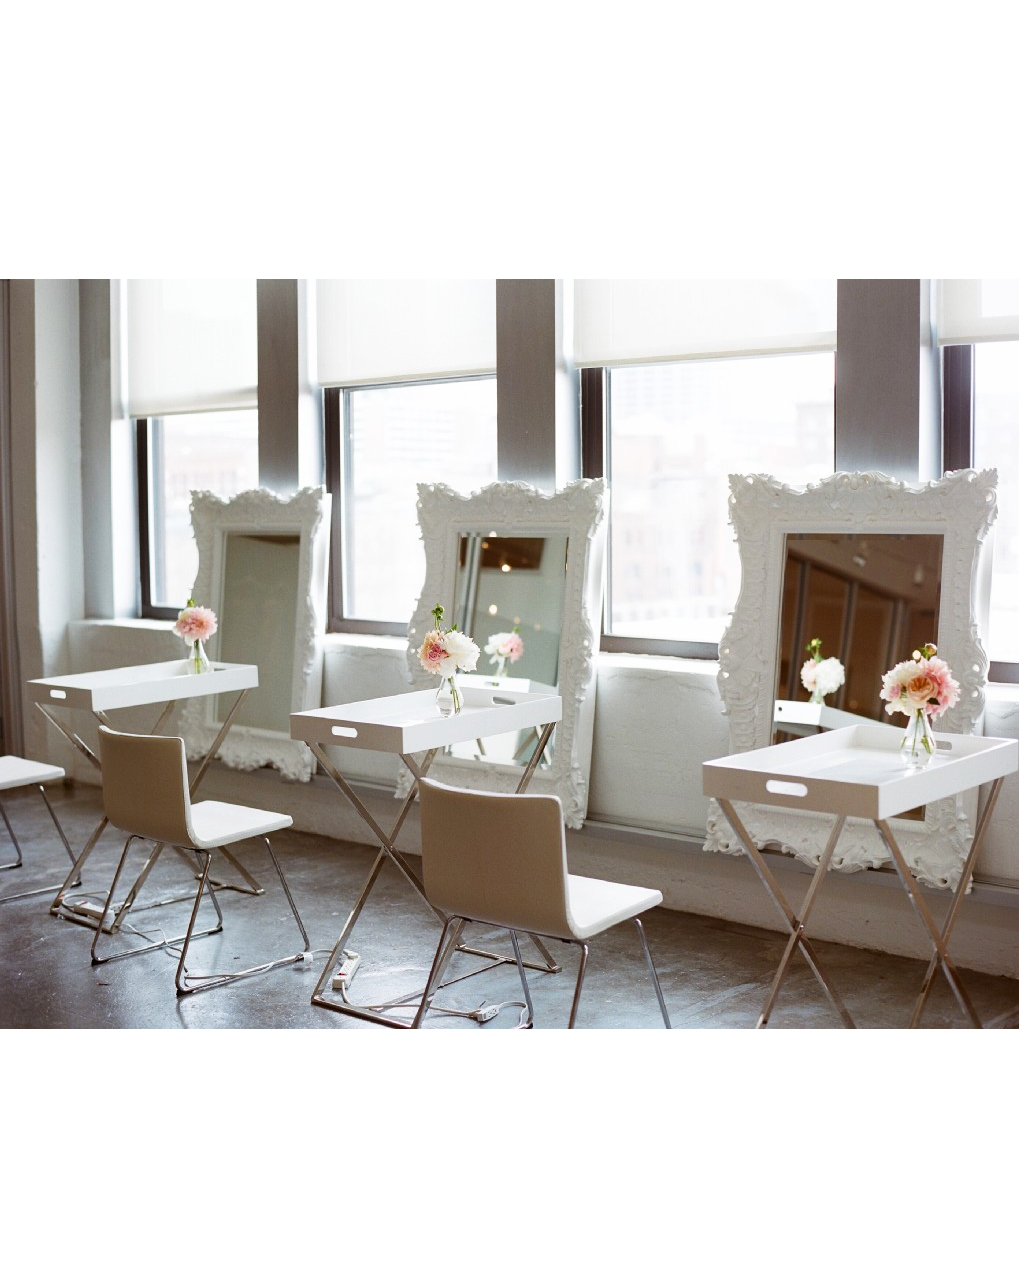 spare room with chairs and mirrors